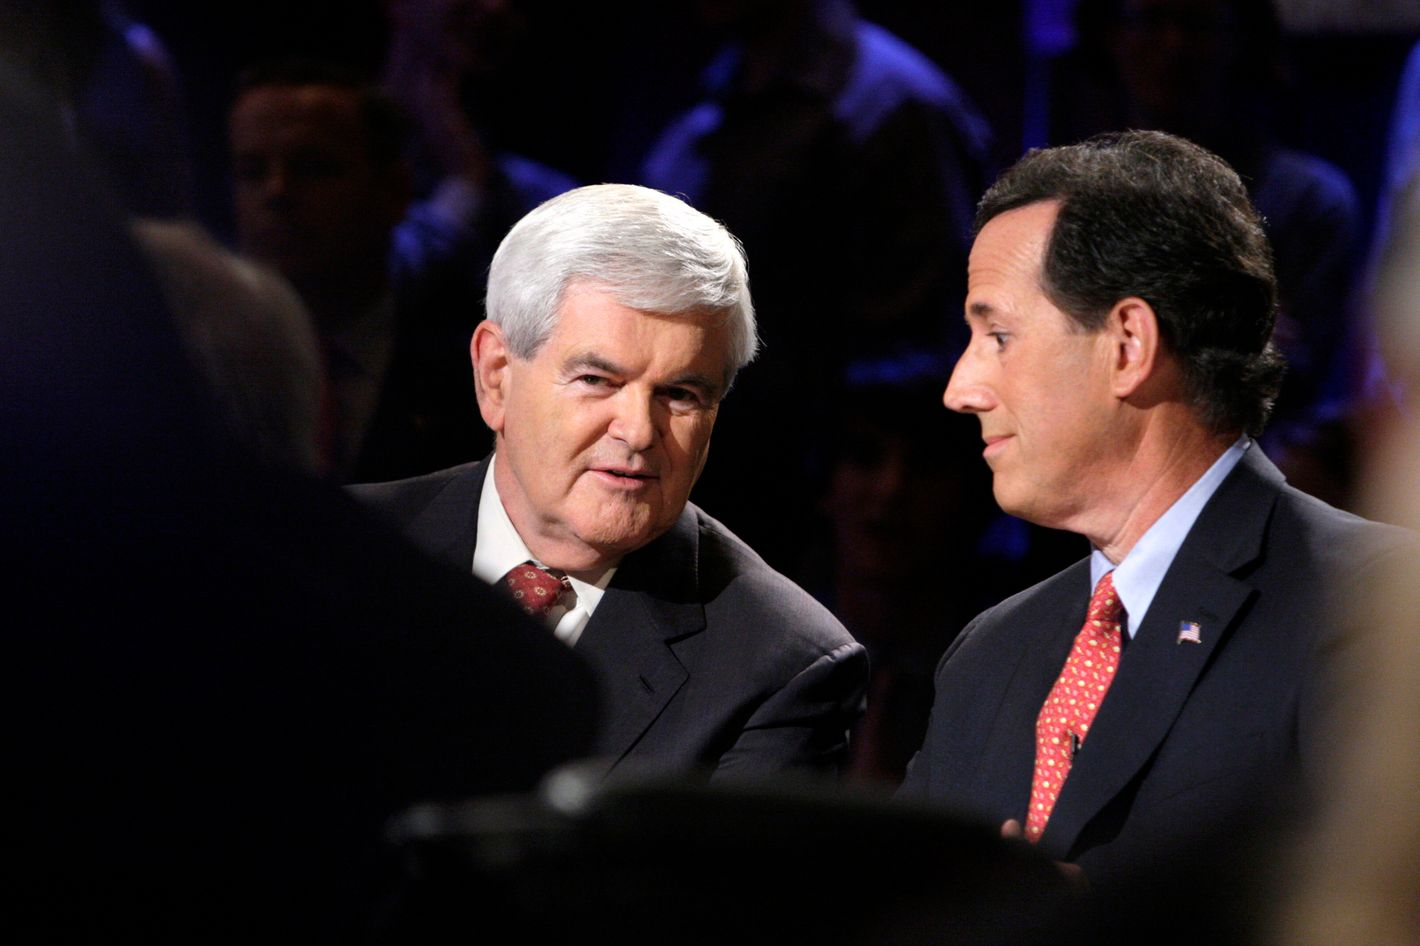 Newt Gingrich and Rick Santorum.